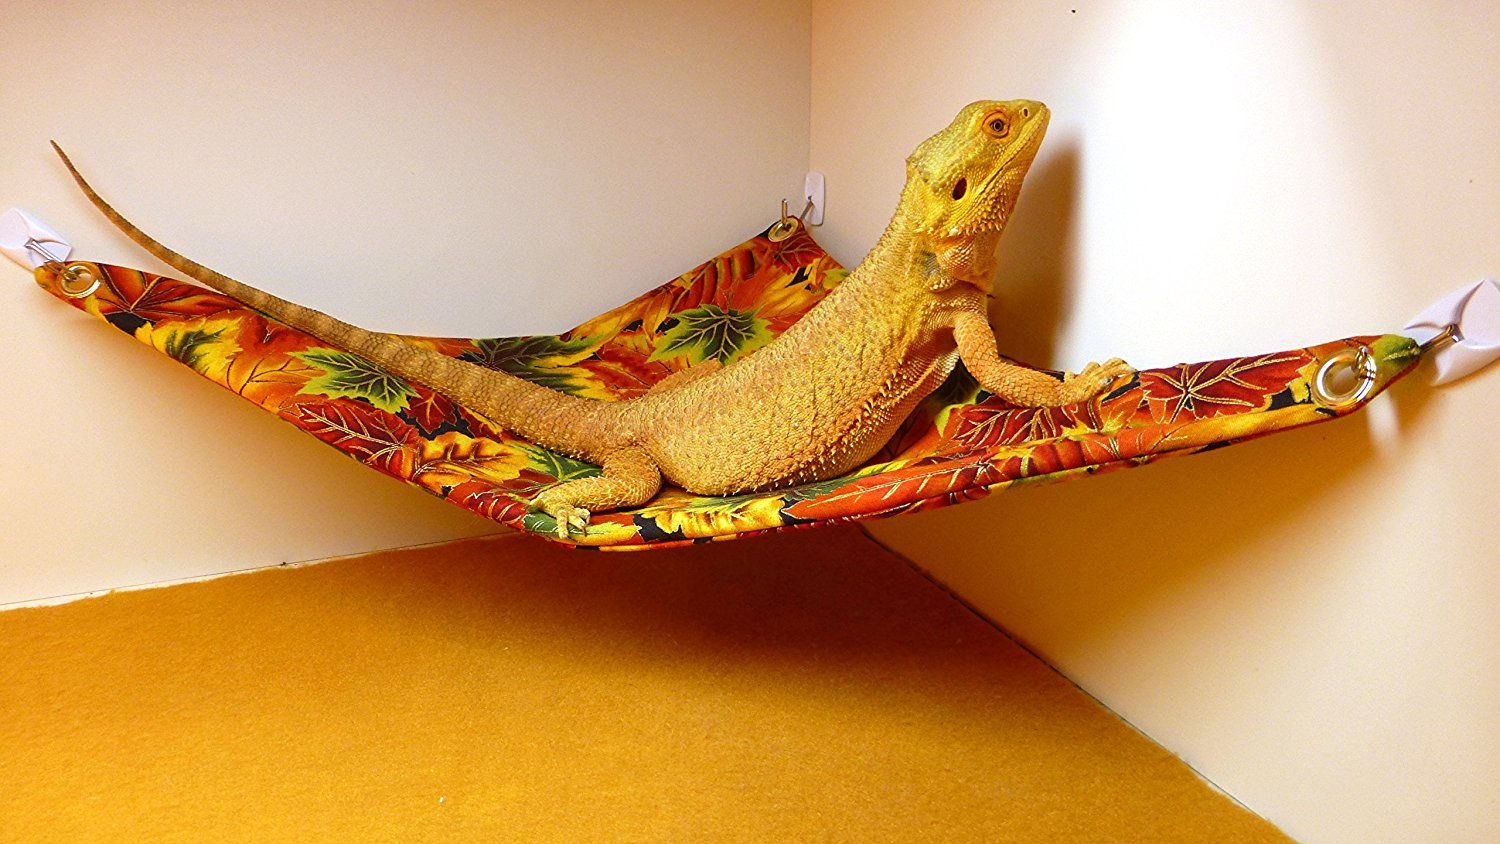 hammock for bearded dragons autumn leaves fabric with adhesive hooks carolina designer dragons hammock for bearded dragons autumn      rh   carolinadesignerdragons